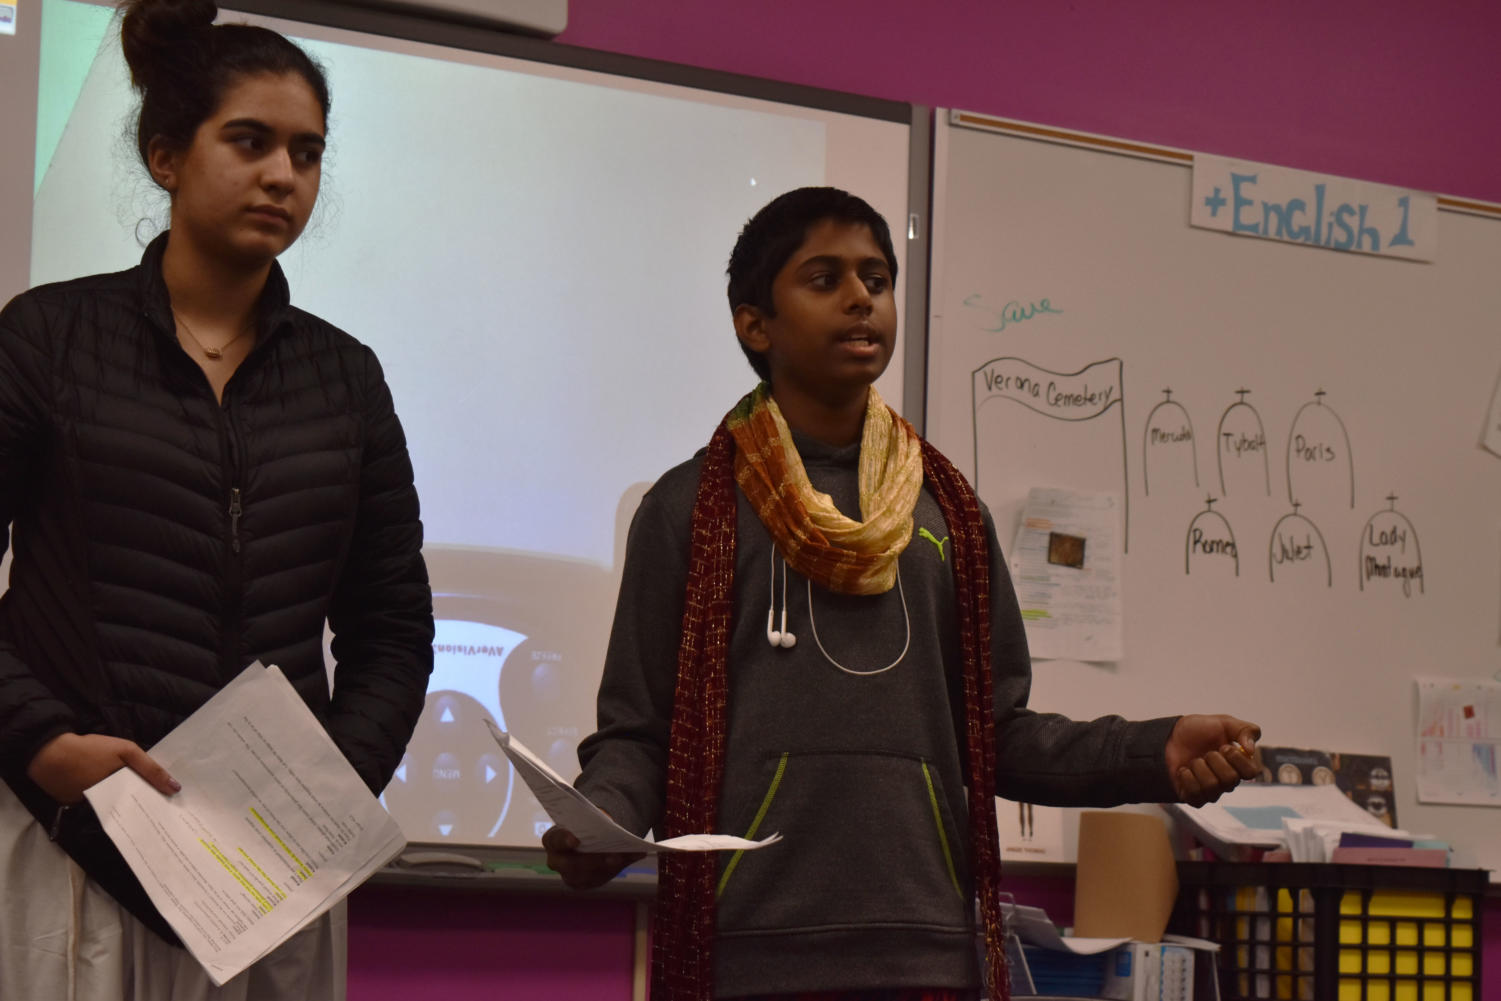 Explaining+the+historical+context+of+their+group%E2%80%99s+colonial+India-themed+script%2C+freshmen+Fatema+Rehmani+and+Sri+Jaladi+speak+to+their+Honors+English+1+classmates.+Students+researched+topics+including+historical+events%2C+clothing%2C+housing%2C+culture+and+the+daily+life+of+people+from+their+assigned+era.+%E2%80%9CIt+was+challenging+and+definitely+required+us+to+push+ourselves%2C%E2%80%9D+Jaladi+said.+%E2%80%9CIt+was+a+great+experience+learning+how+to+not+procrastinate+and+stay+organized.%E2%80%9D%0C